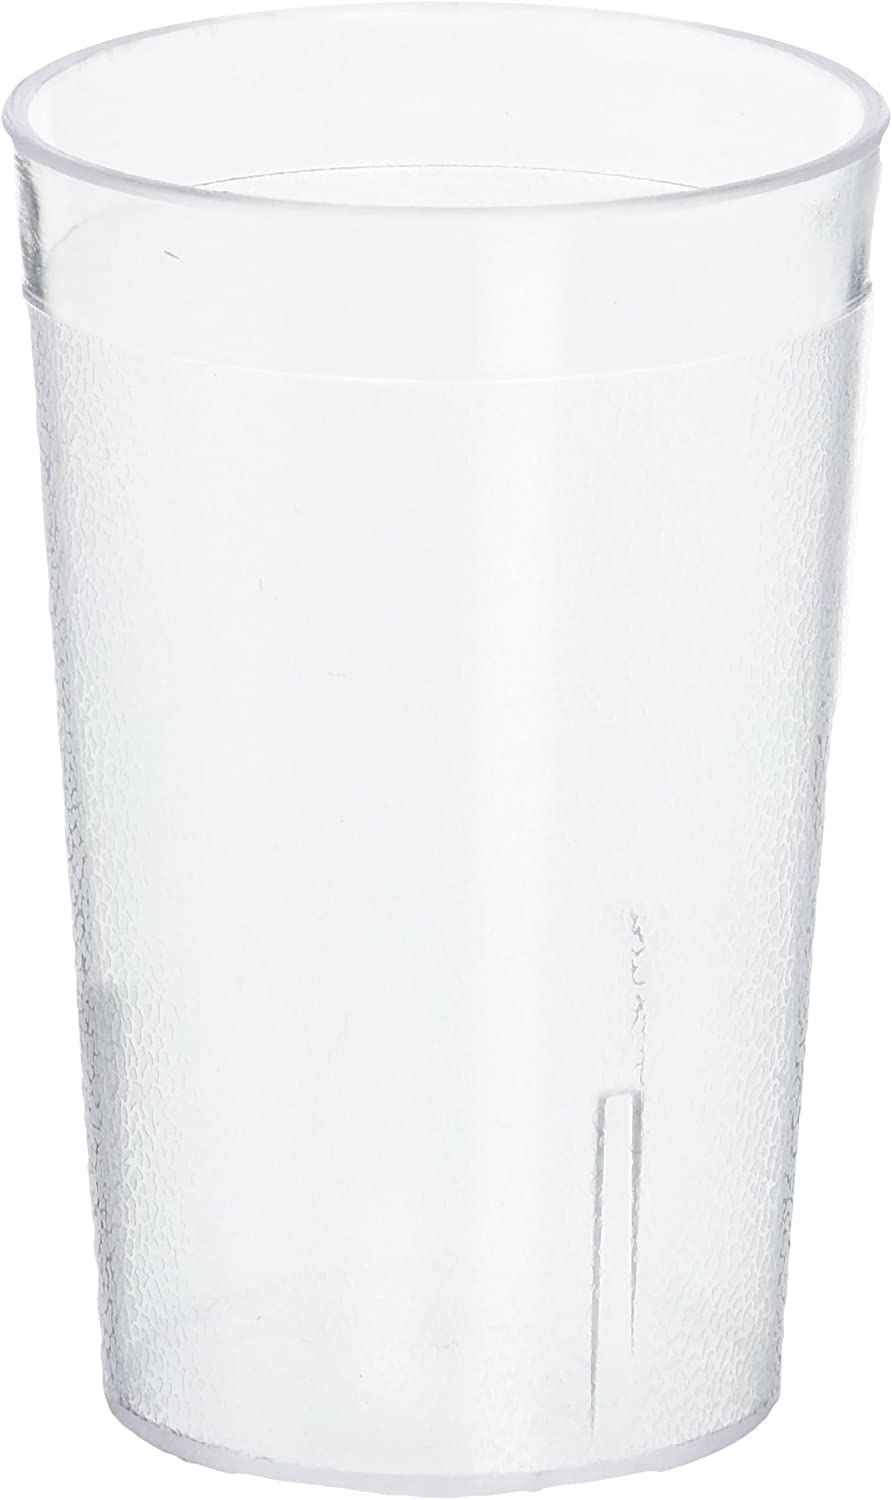 Winco Pebbled Tumblers, 8-Ounce, Clear